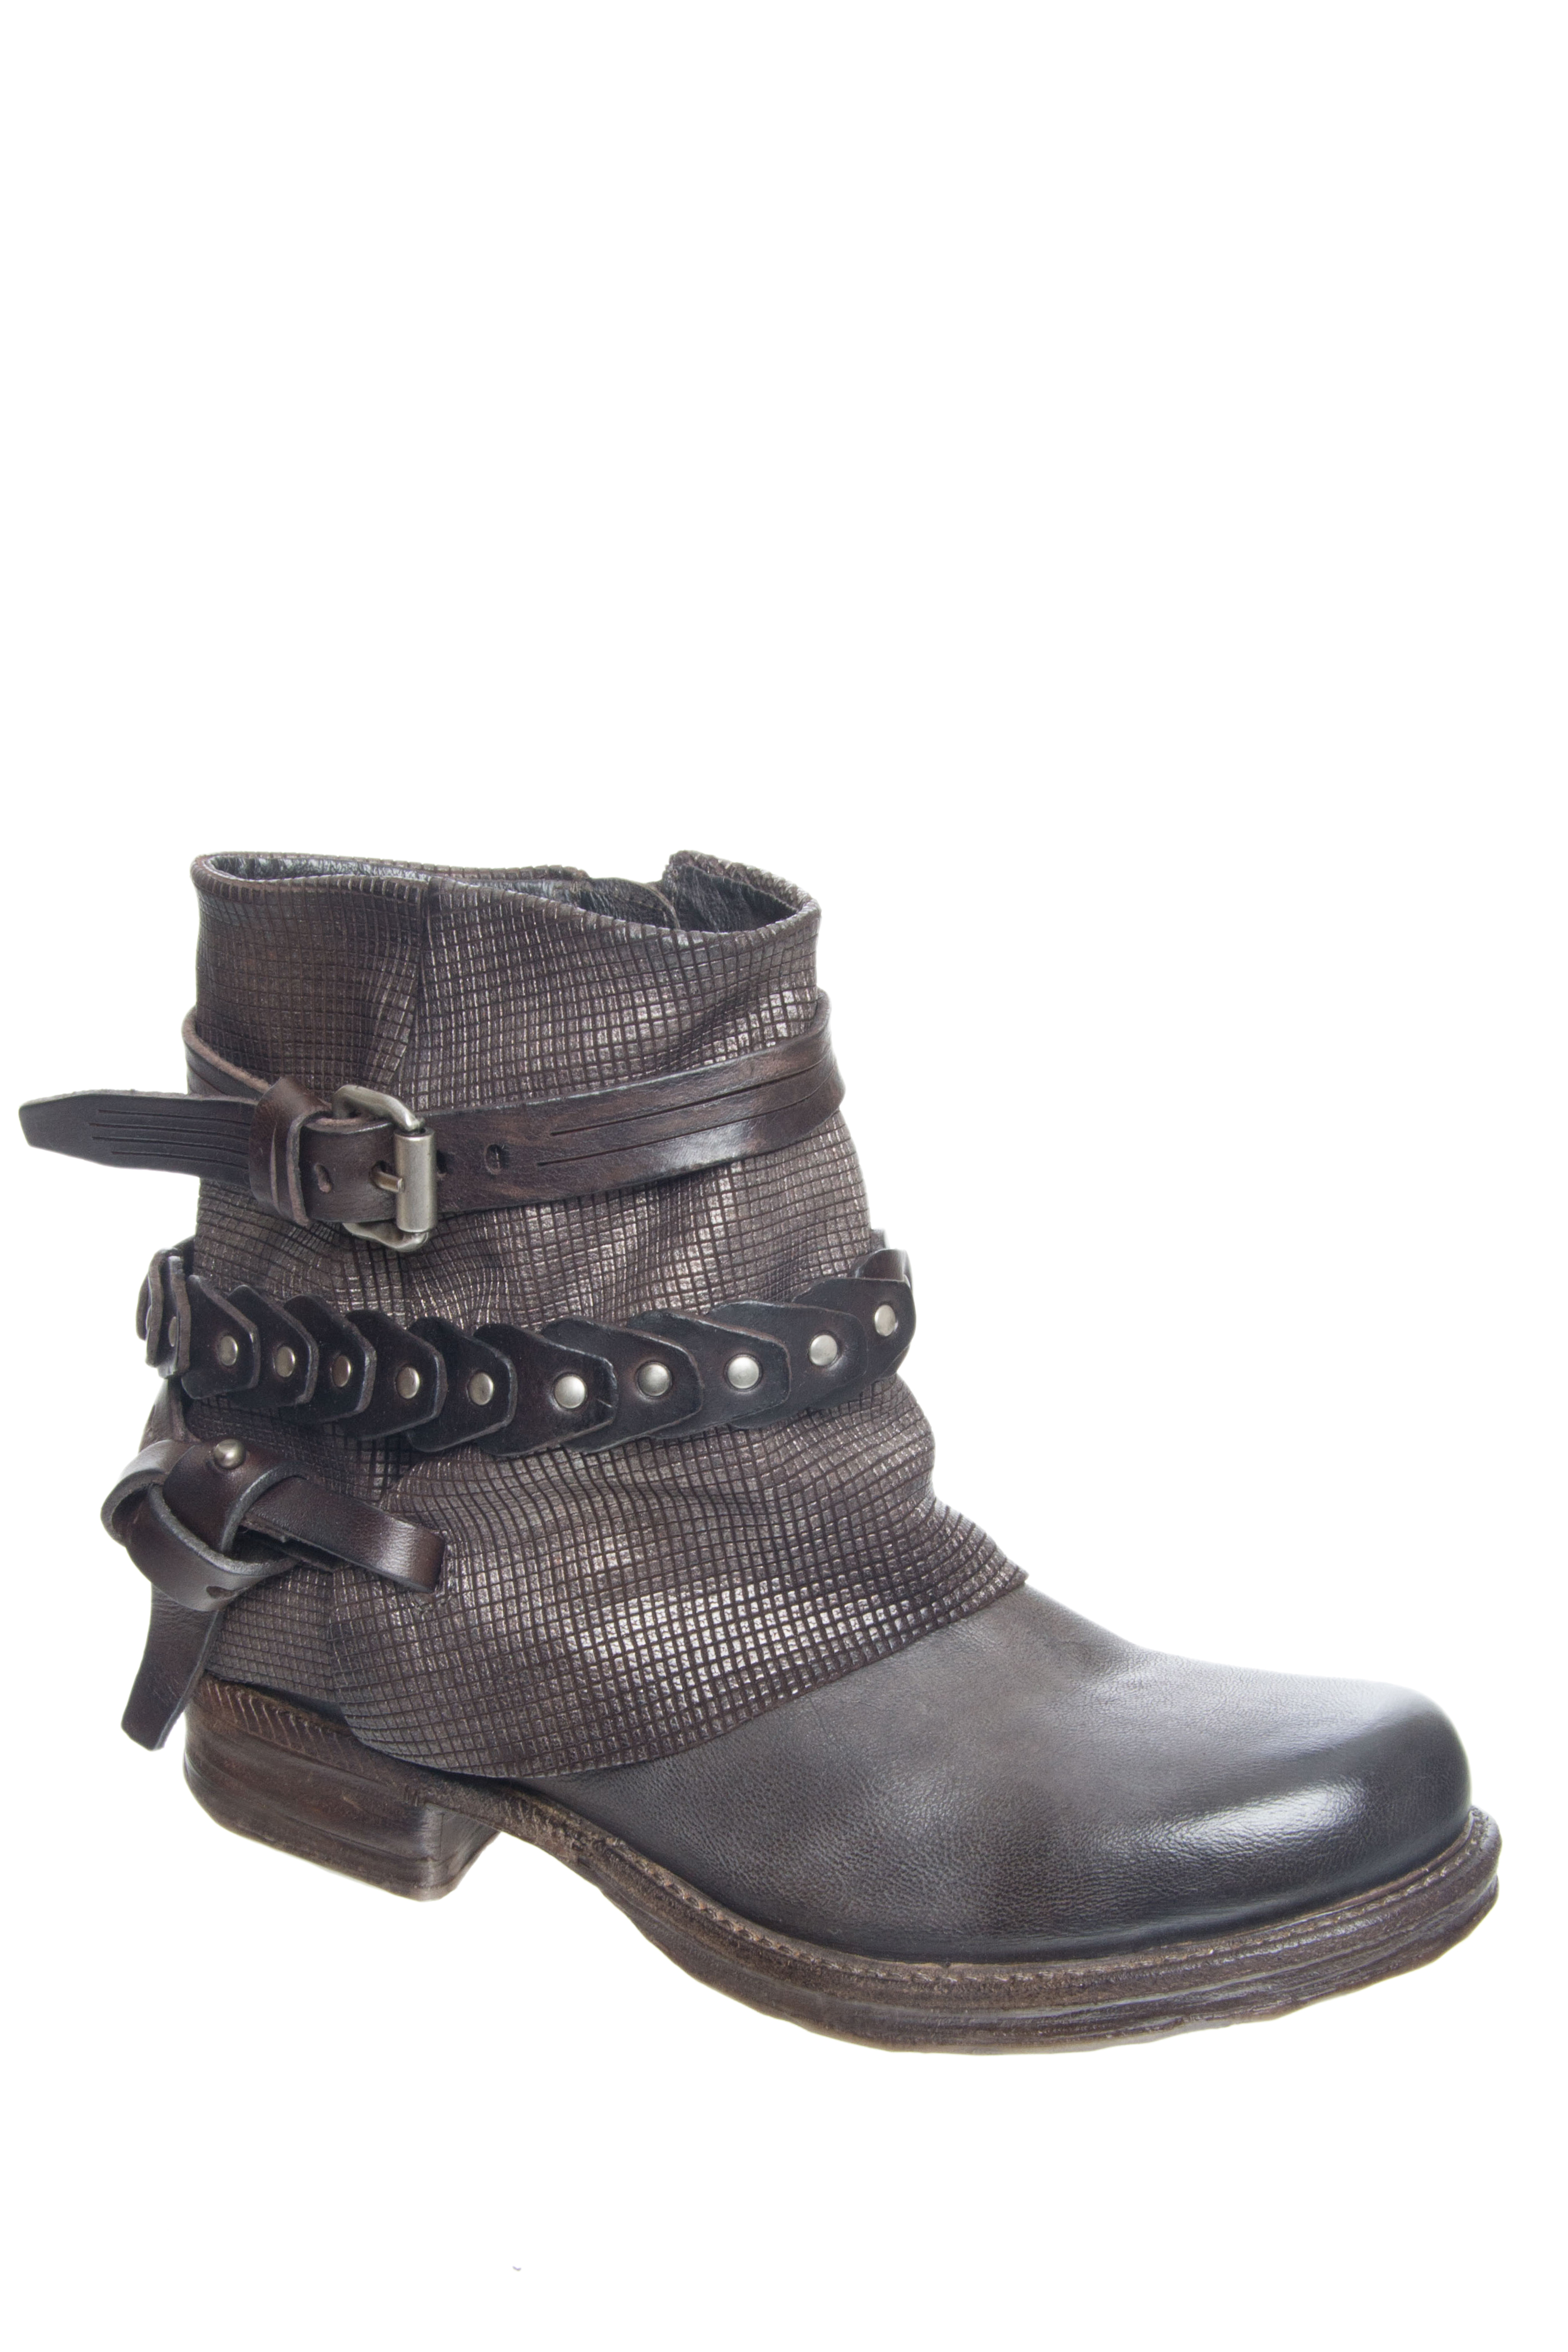 A.S.98 Stratton Low Heel Boots - Smoke